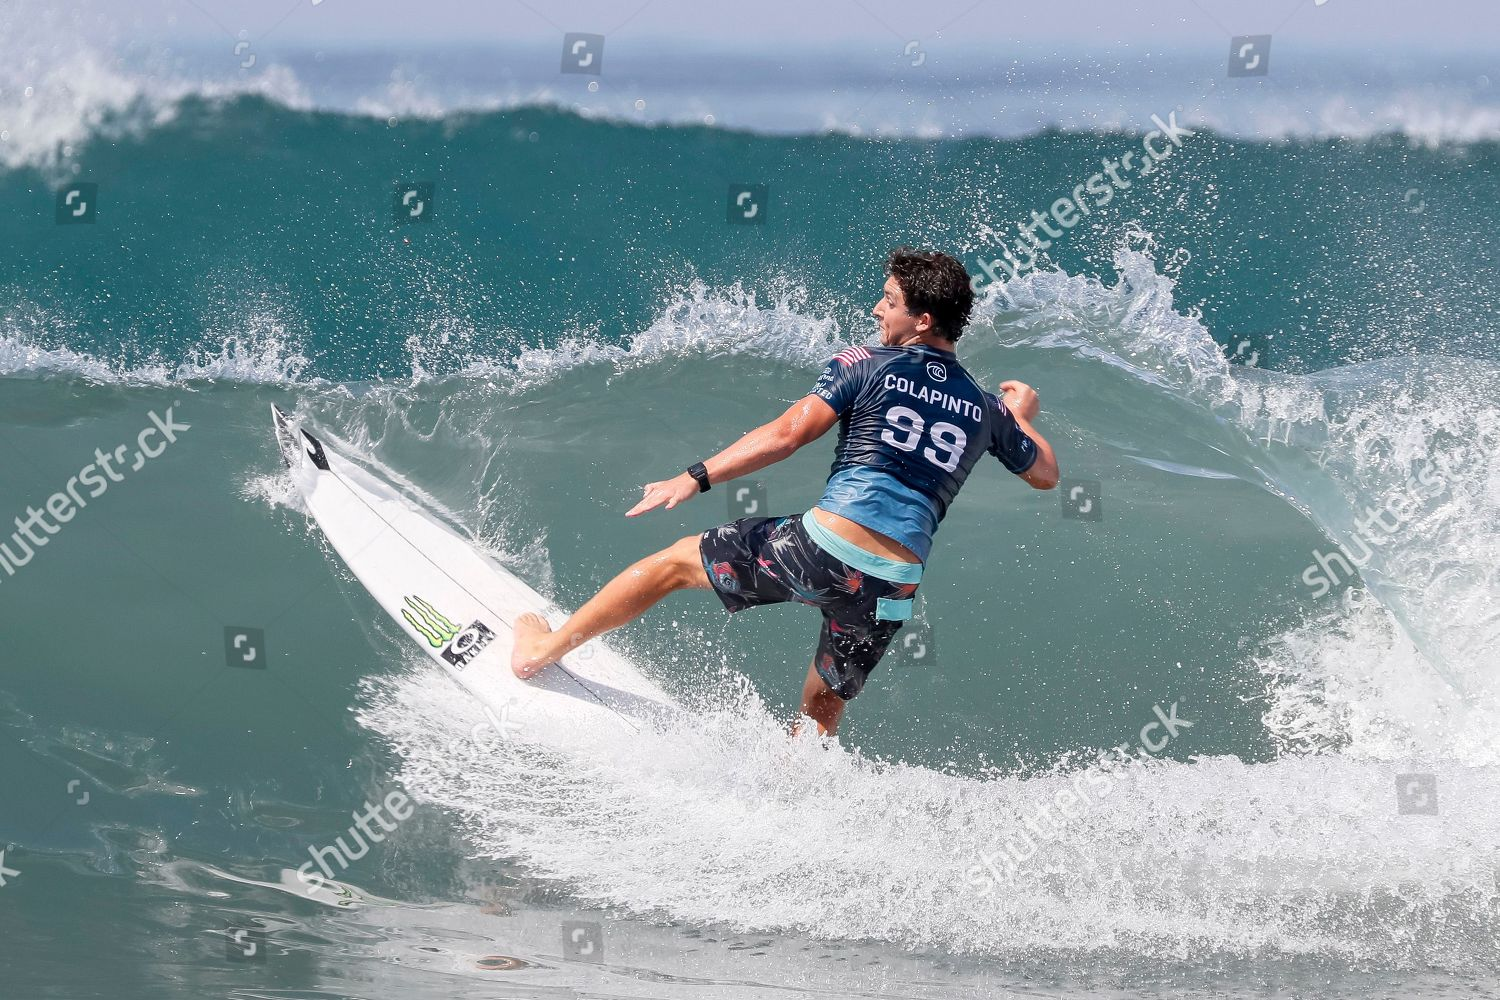 Griffin Colapinto USA action during round 32 Editorial Stock